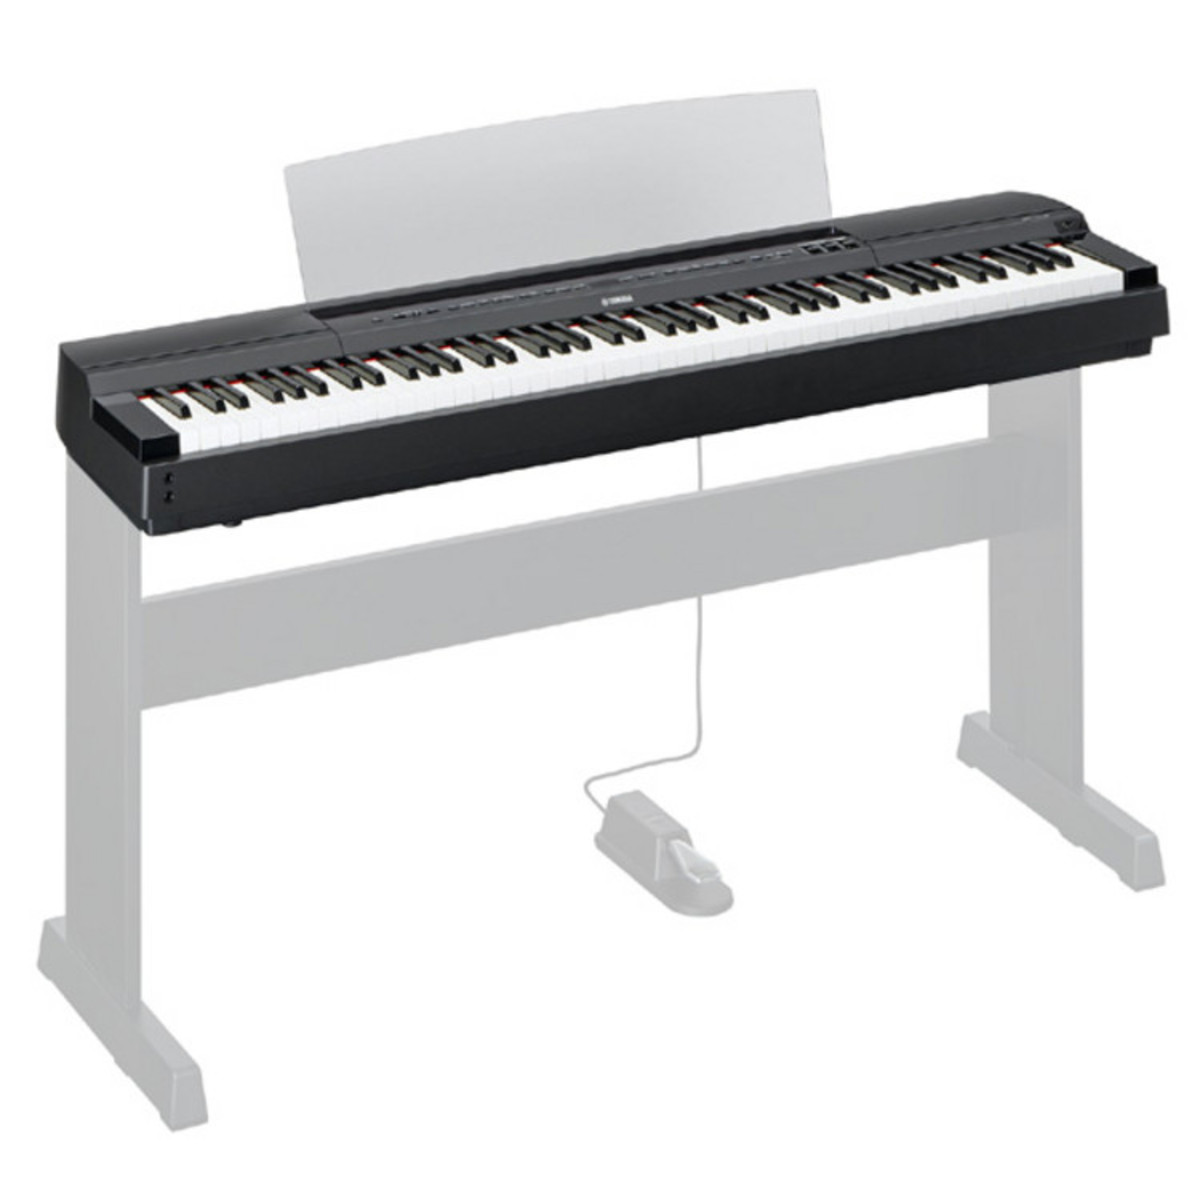 Yamaha p series p 255 lightweight digital piano black at for Yamaha digital piano dealers